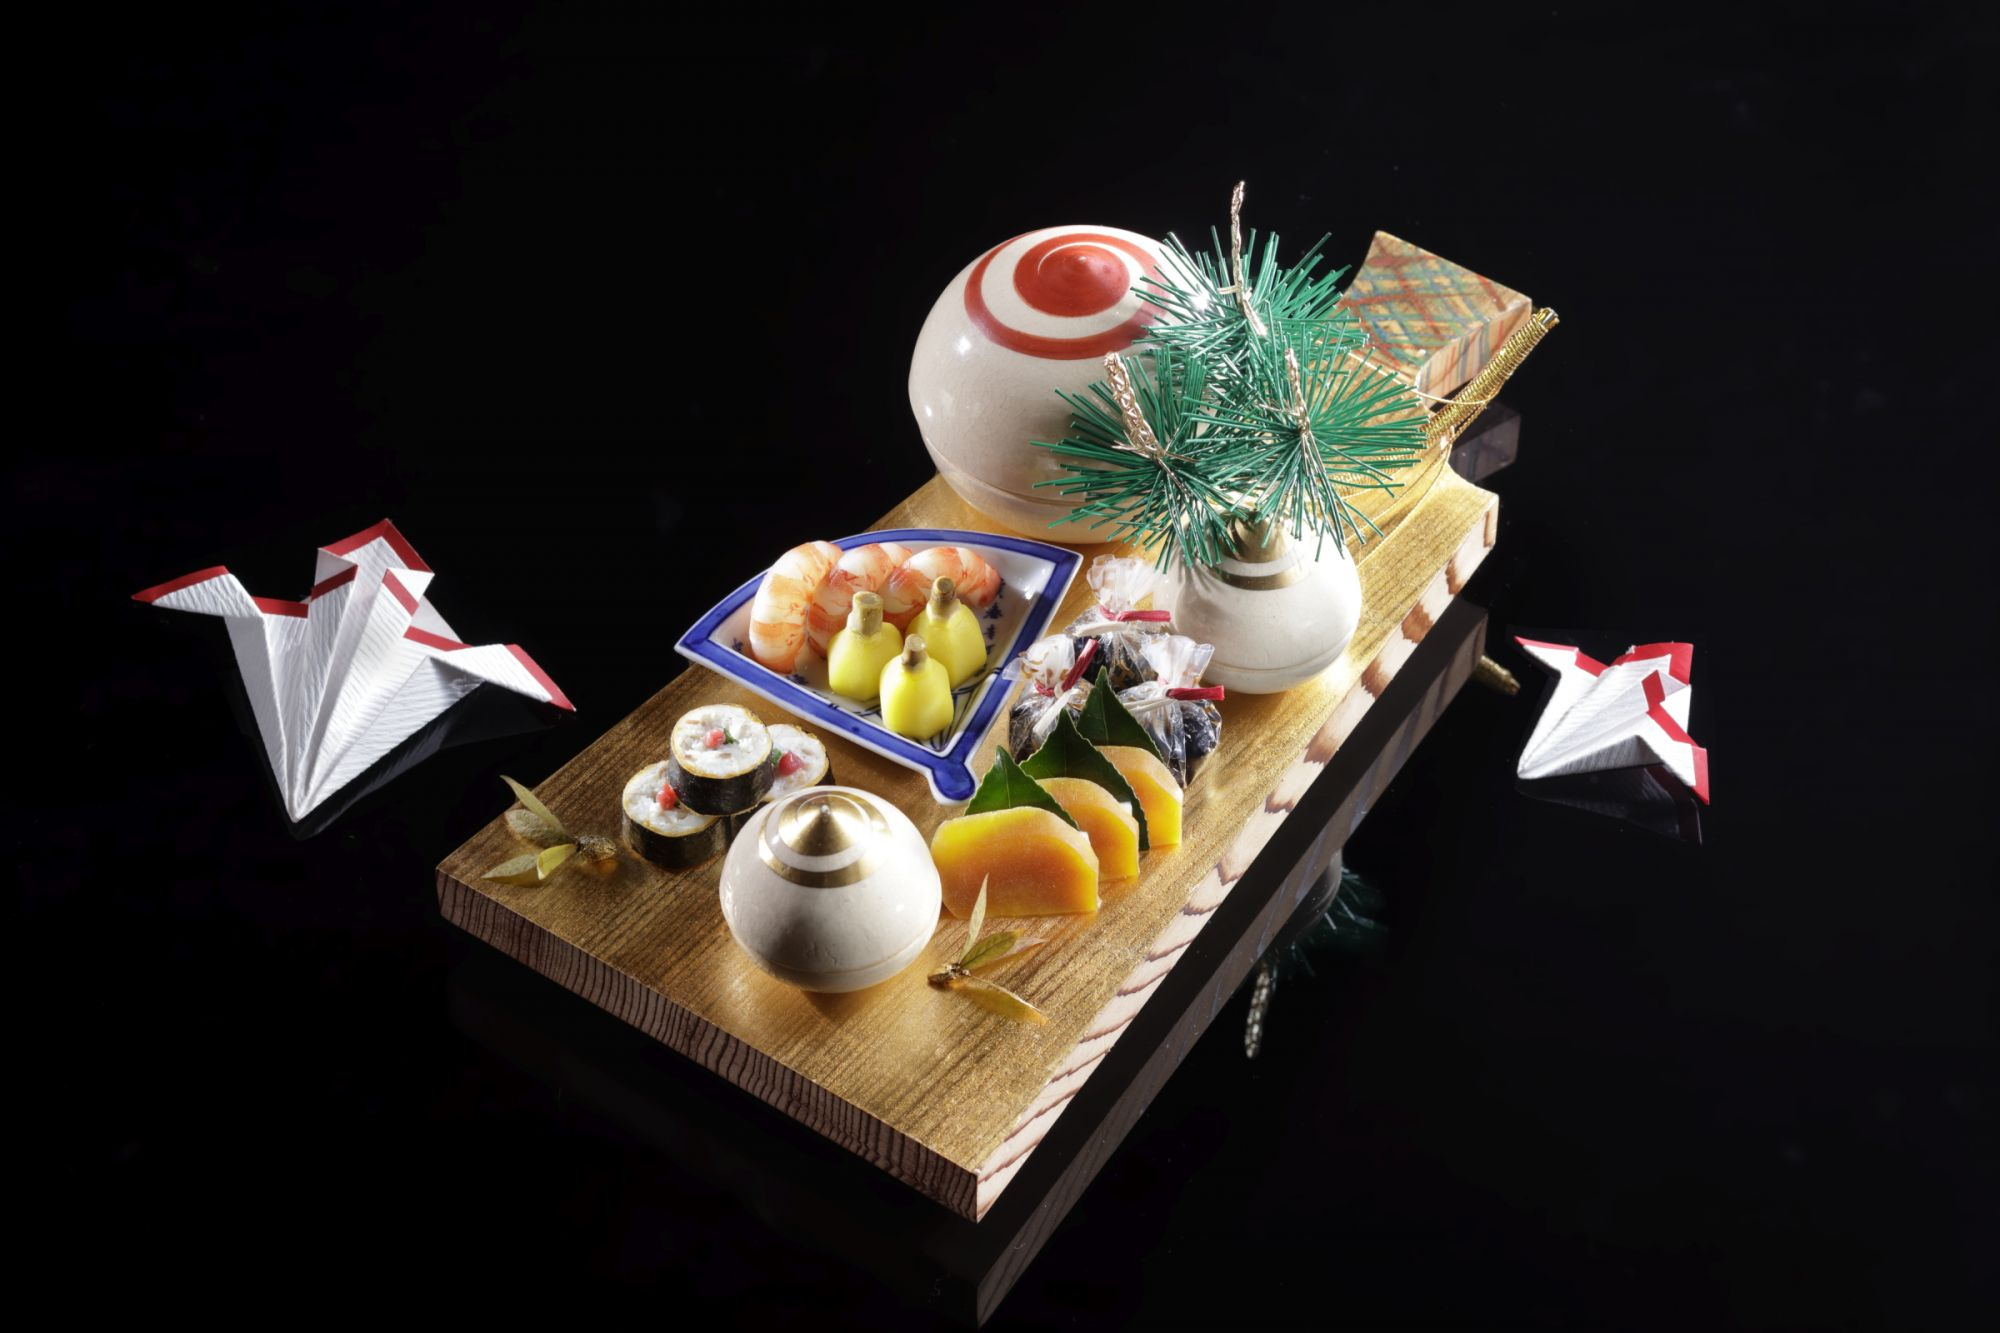 Kyoto's Best Chefs Cook To Inspire New Traditions